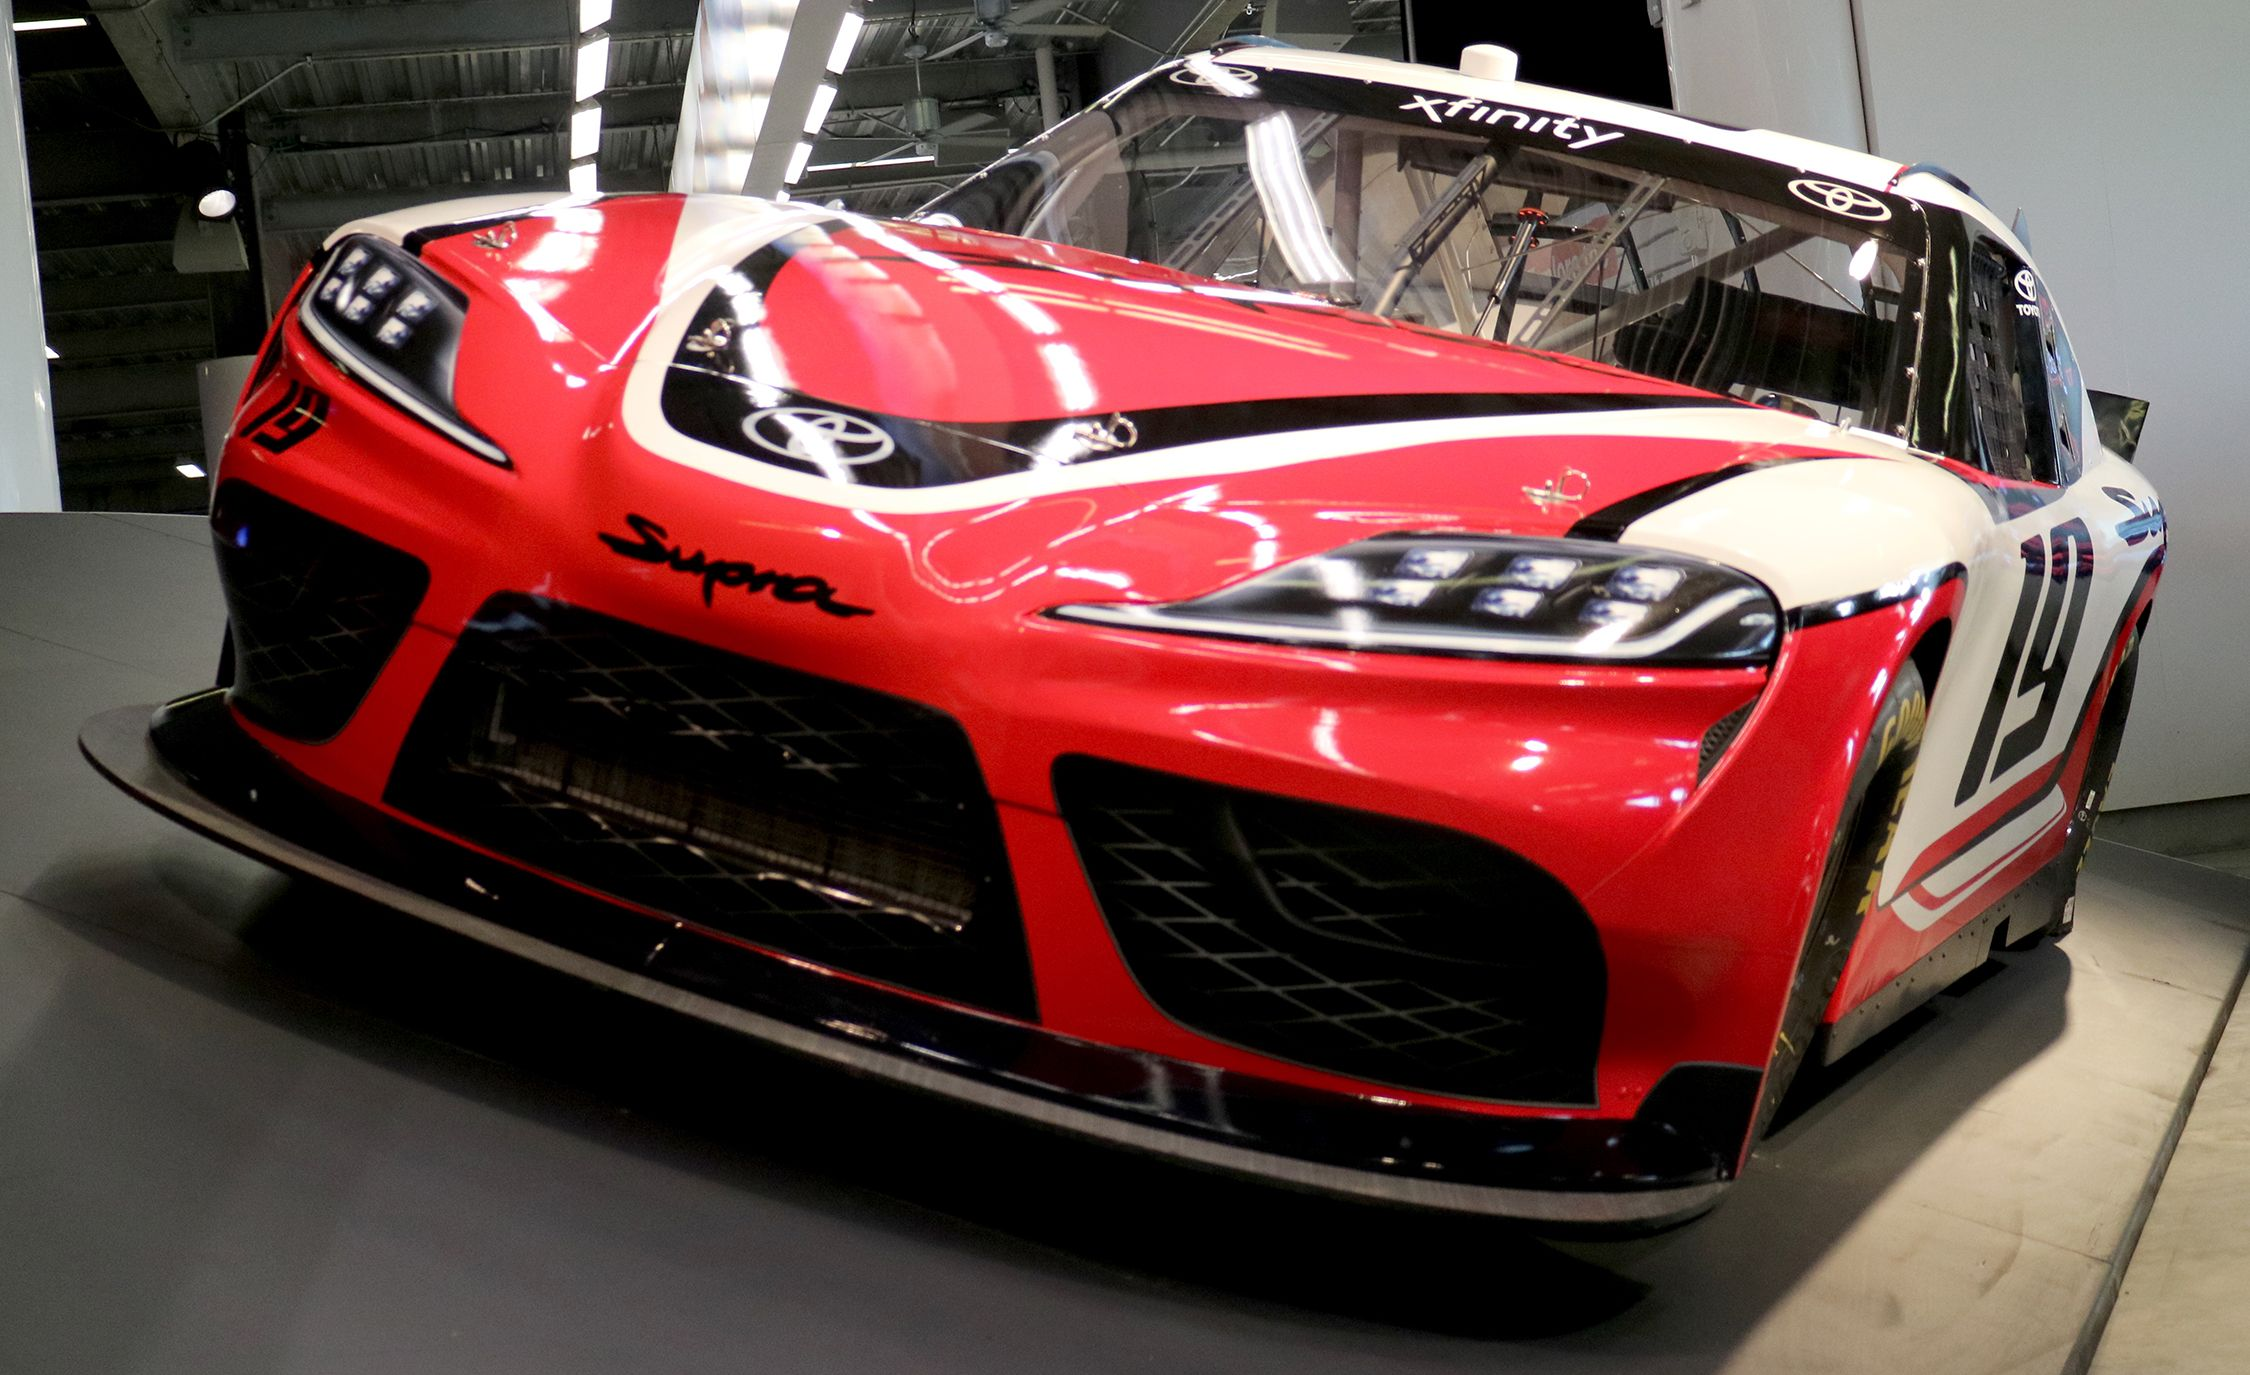 Up Close With The Nascar Xfinity Series Toyota Supra Race Car Trd Racing Feature And Driver